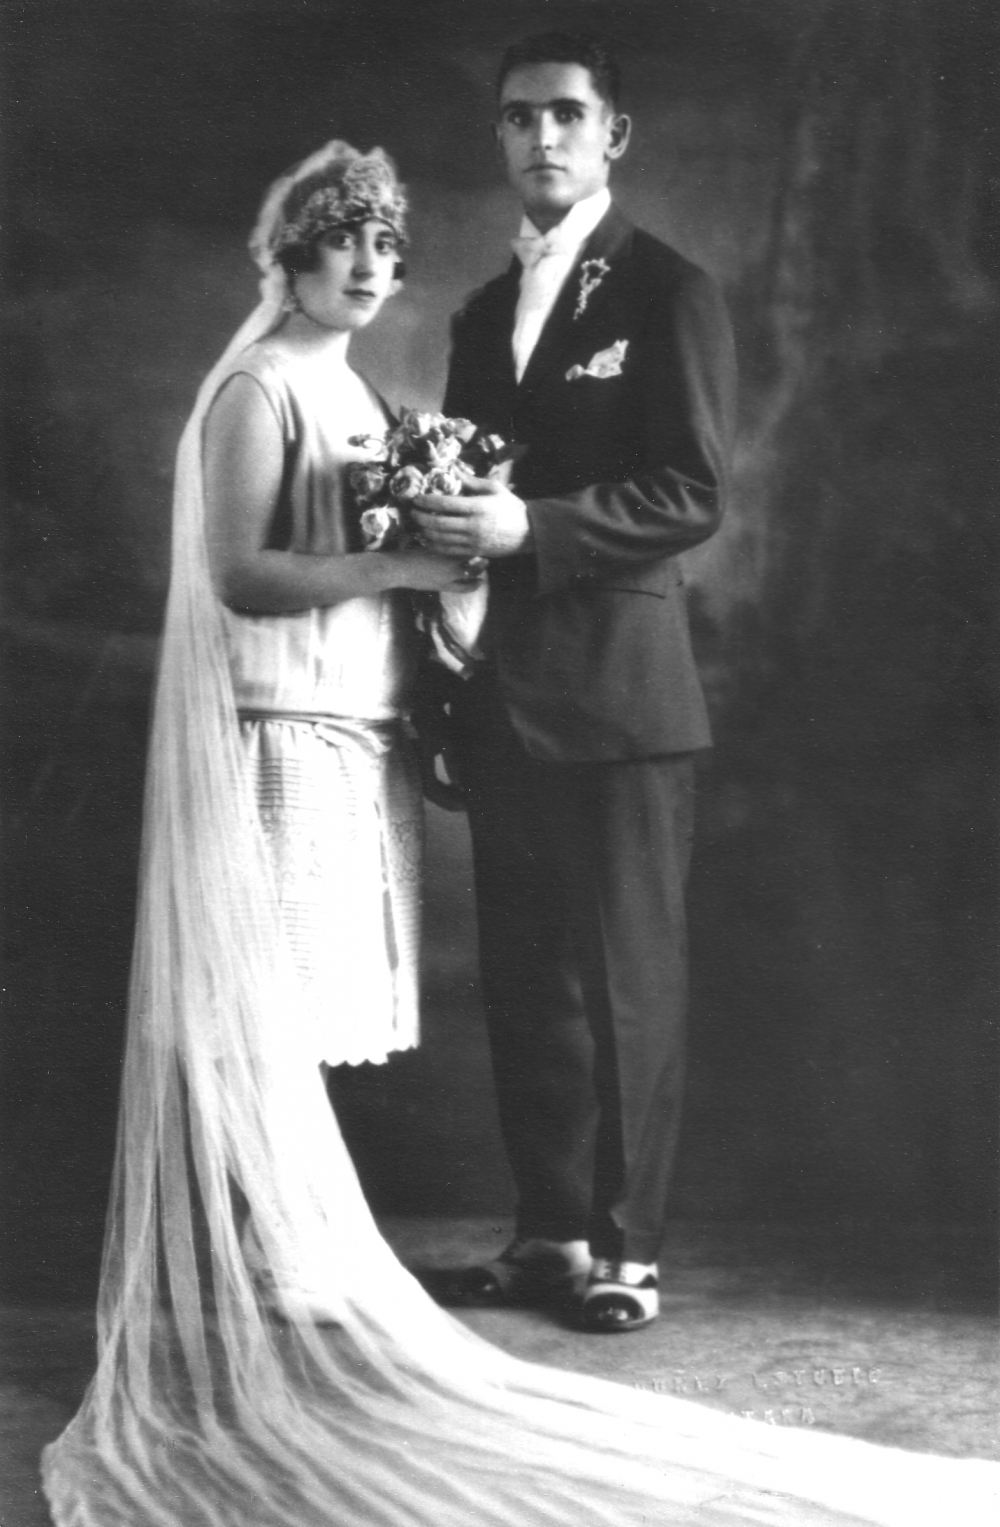 Ruth Behar's paternal grandparents came from Turkey and were married in Havana. This photograph dates from the mid-1920s.